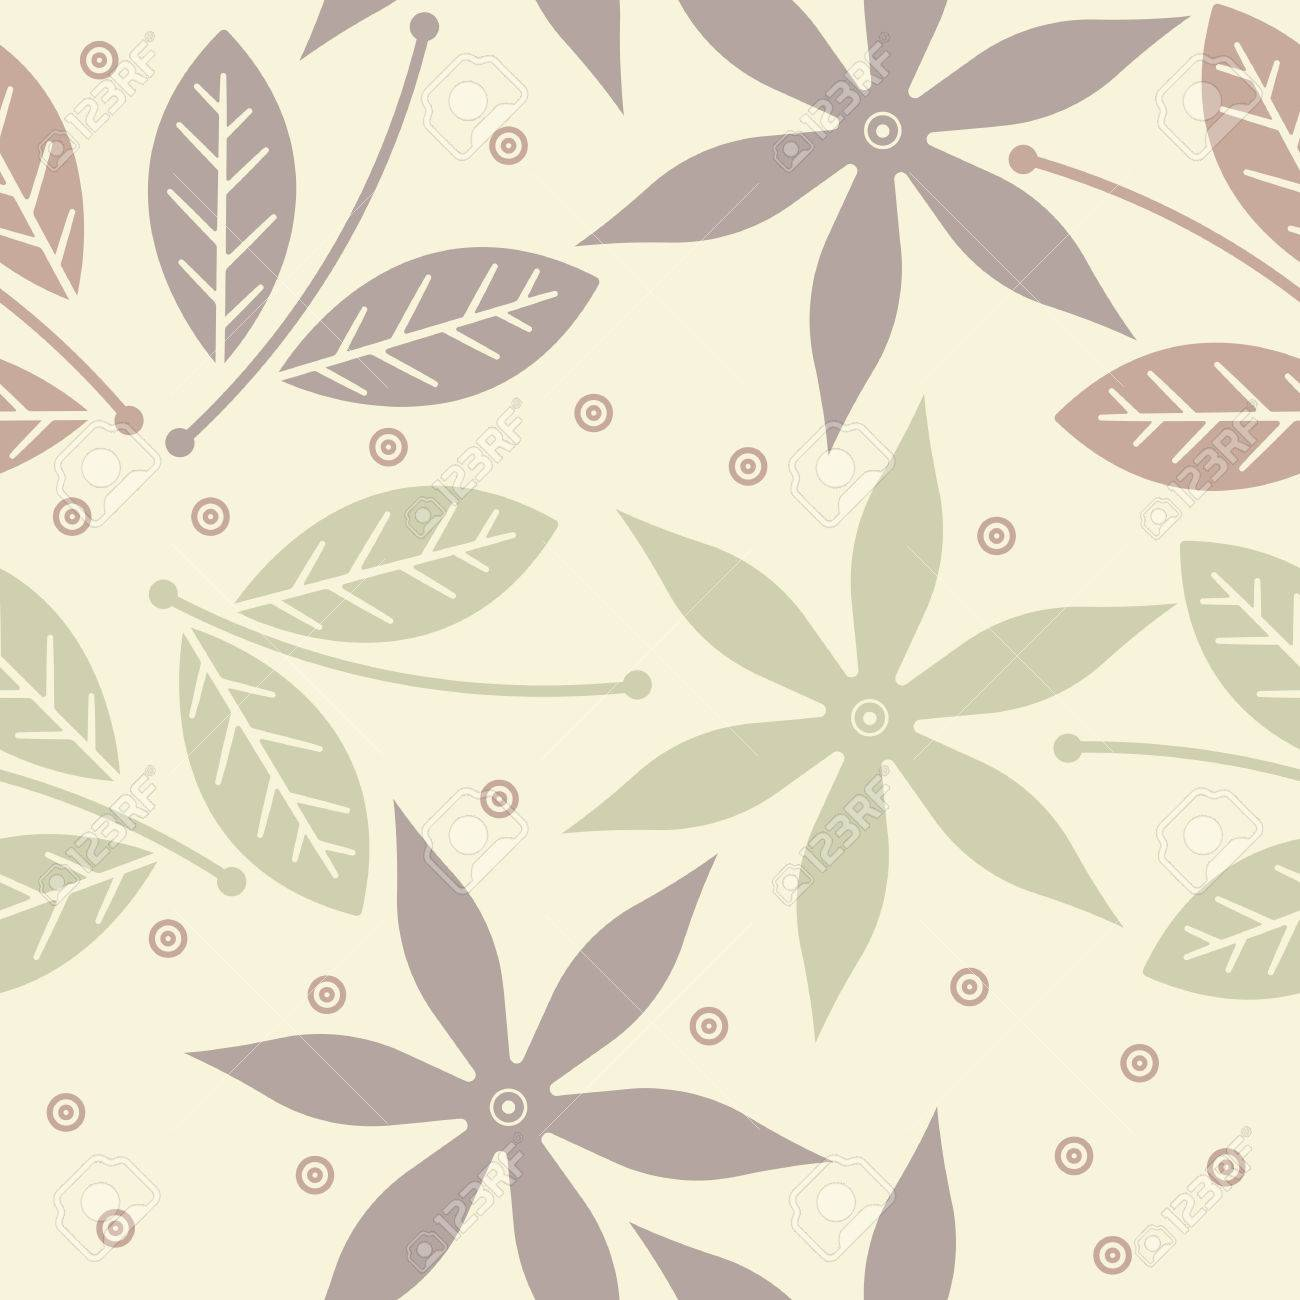 Cute Endless Pattern With Summer Flowers Can Be Used For Design